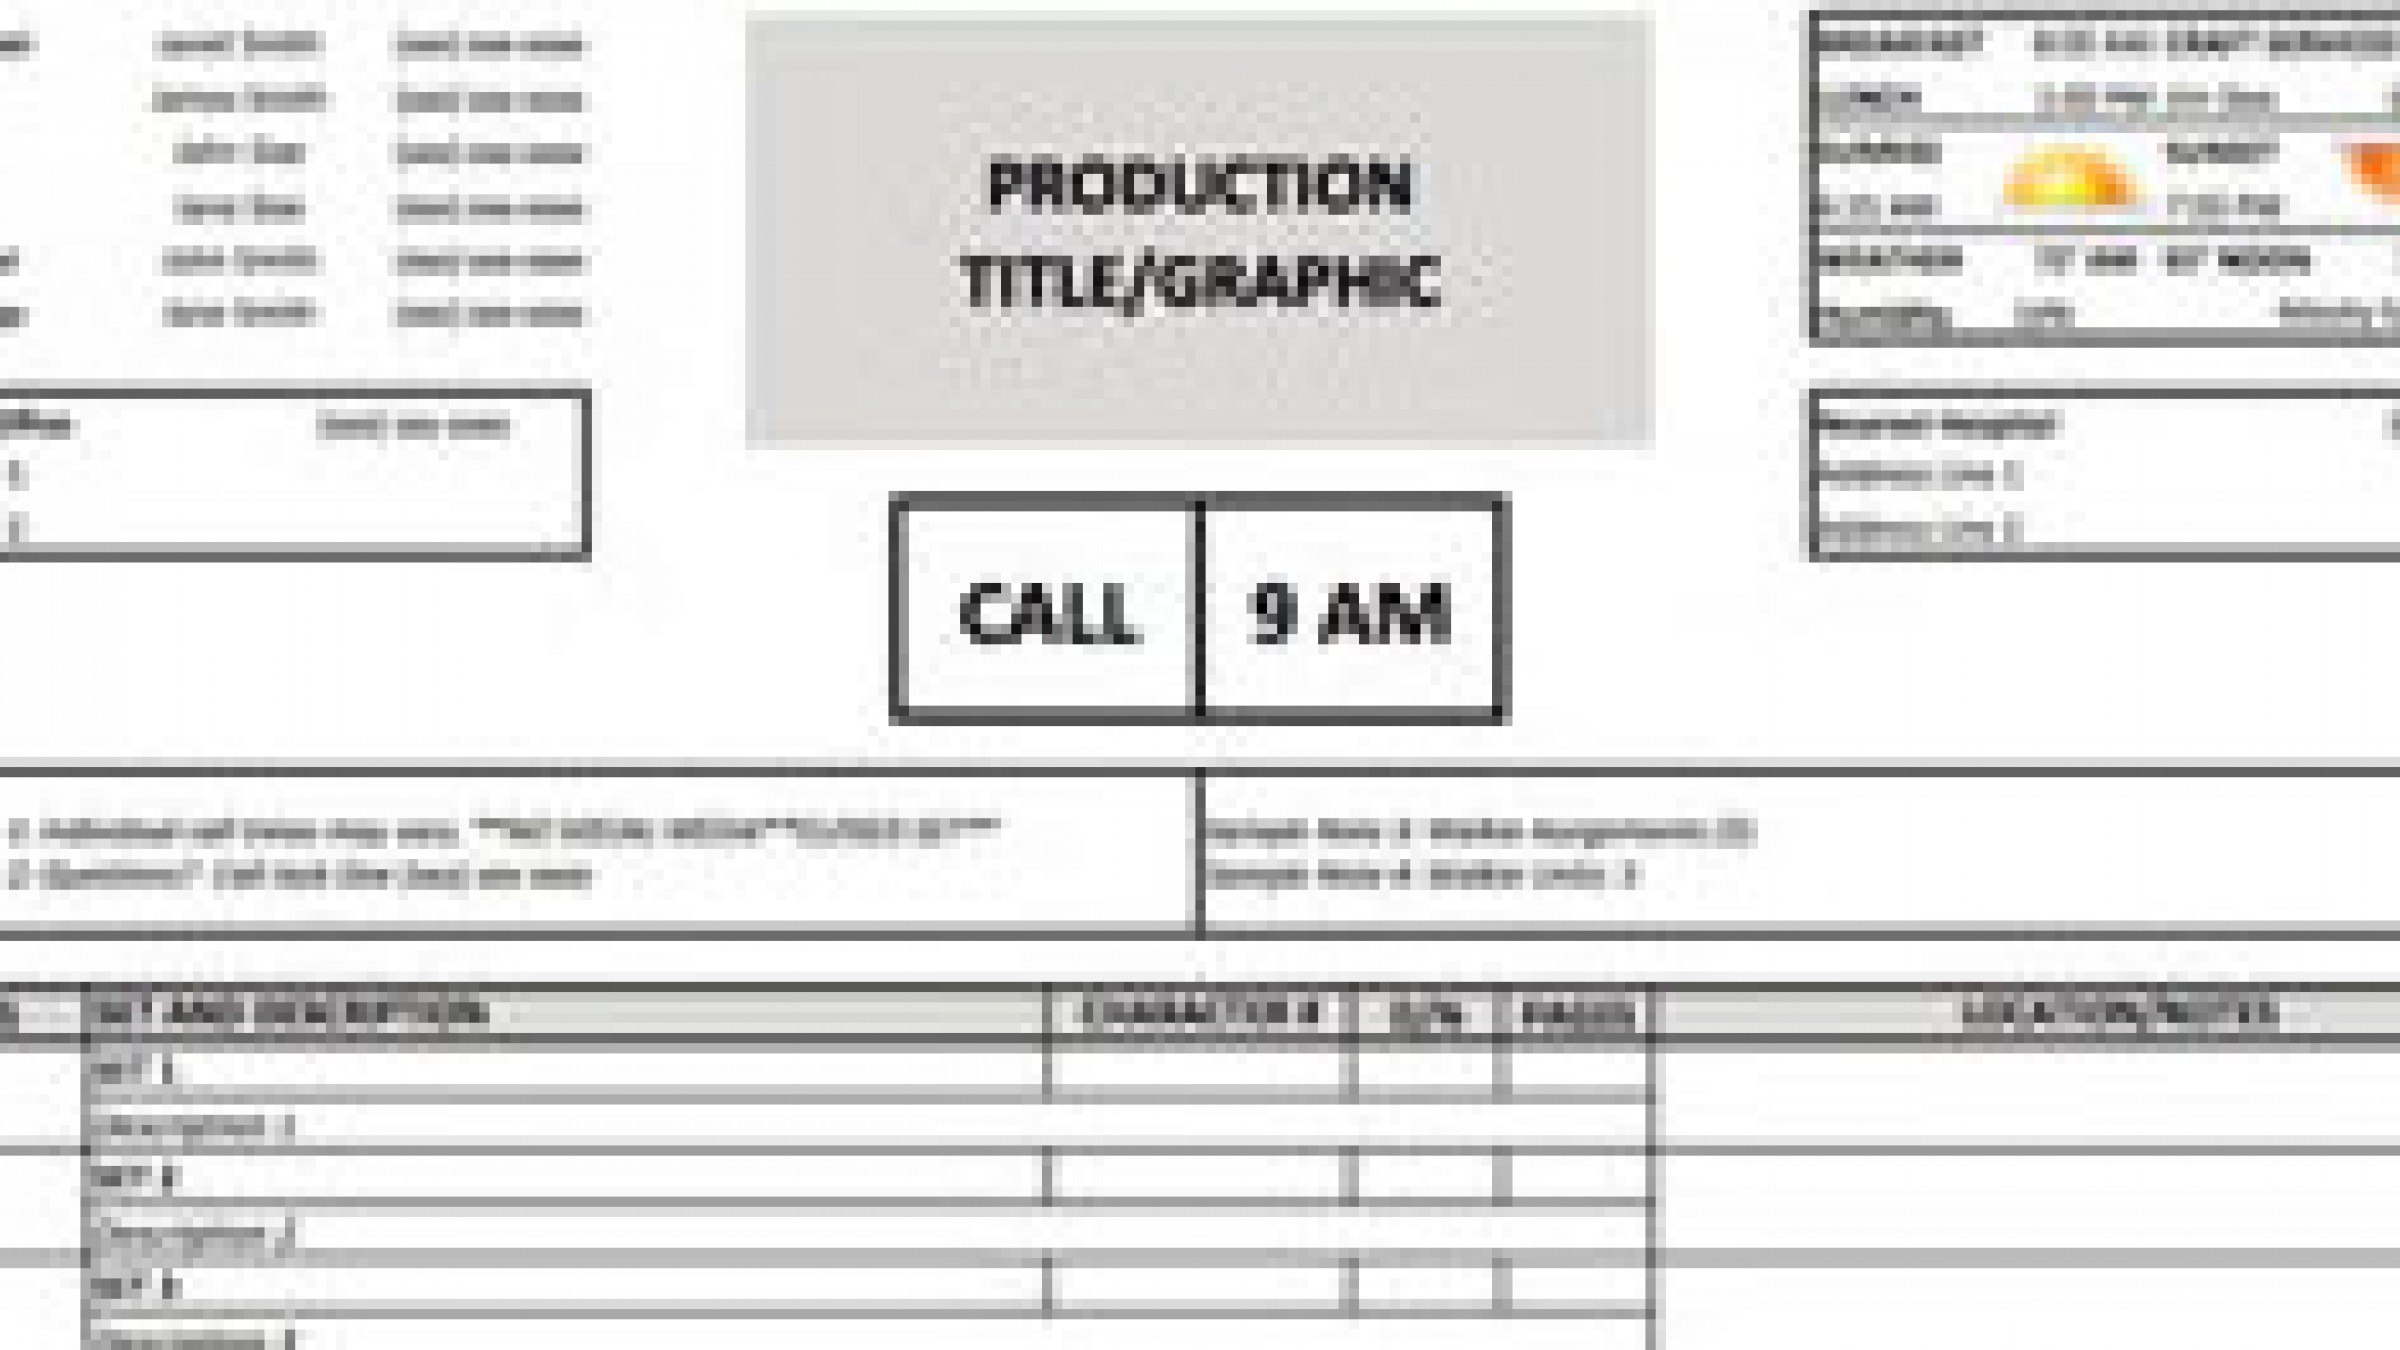 Download A Free Call Sheet Template To Get Your Film Crew On The Call Sheet  Template Lan Bui Download Free Call Sheet Template Cast Crew Call Free Job  Card ...  Job Sheet Template Free Download